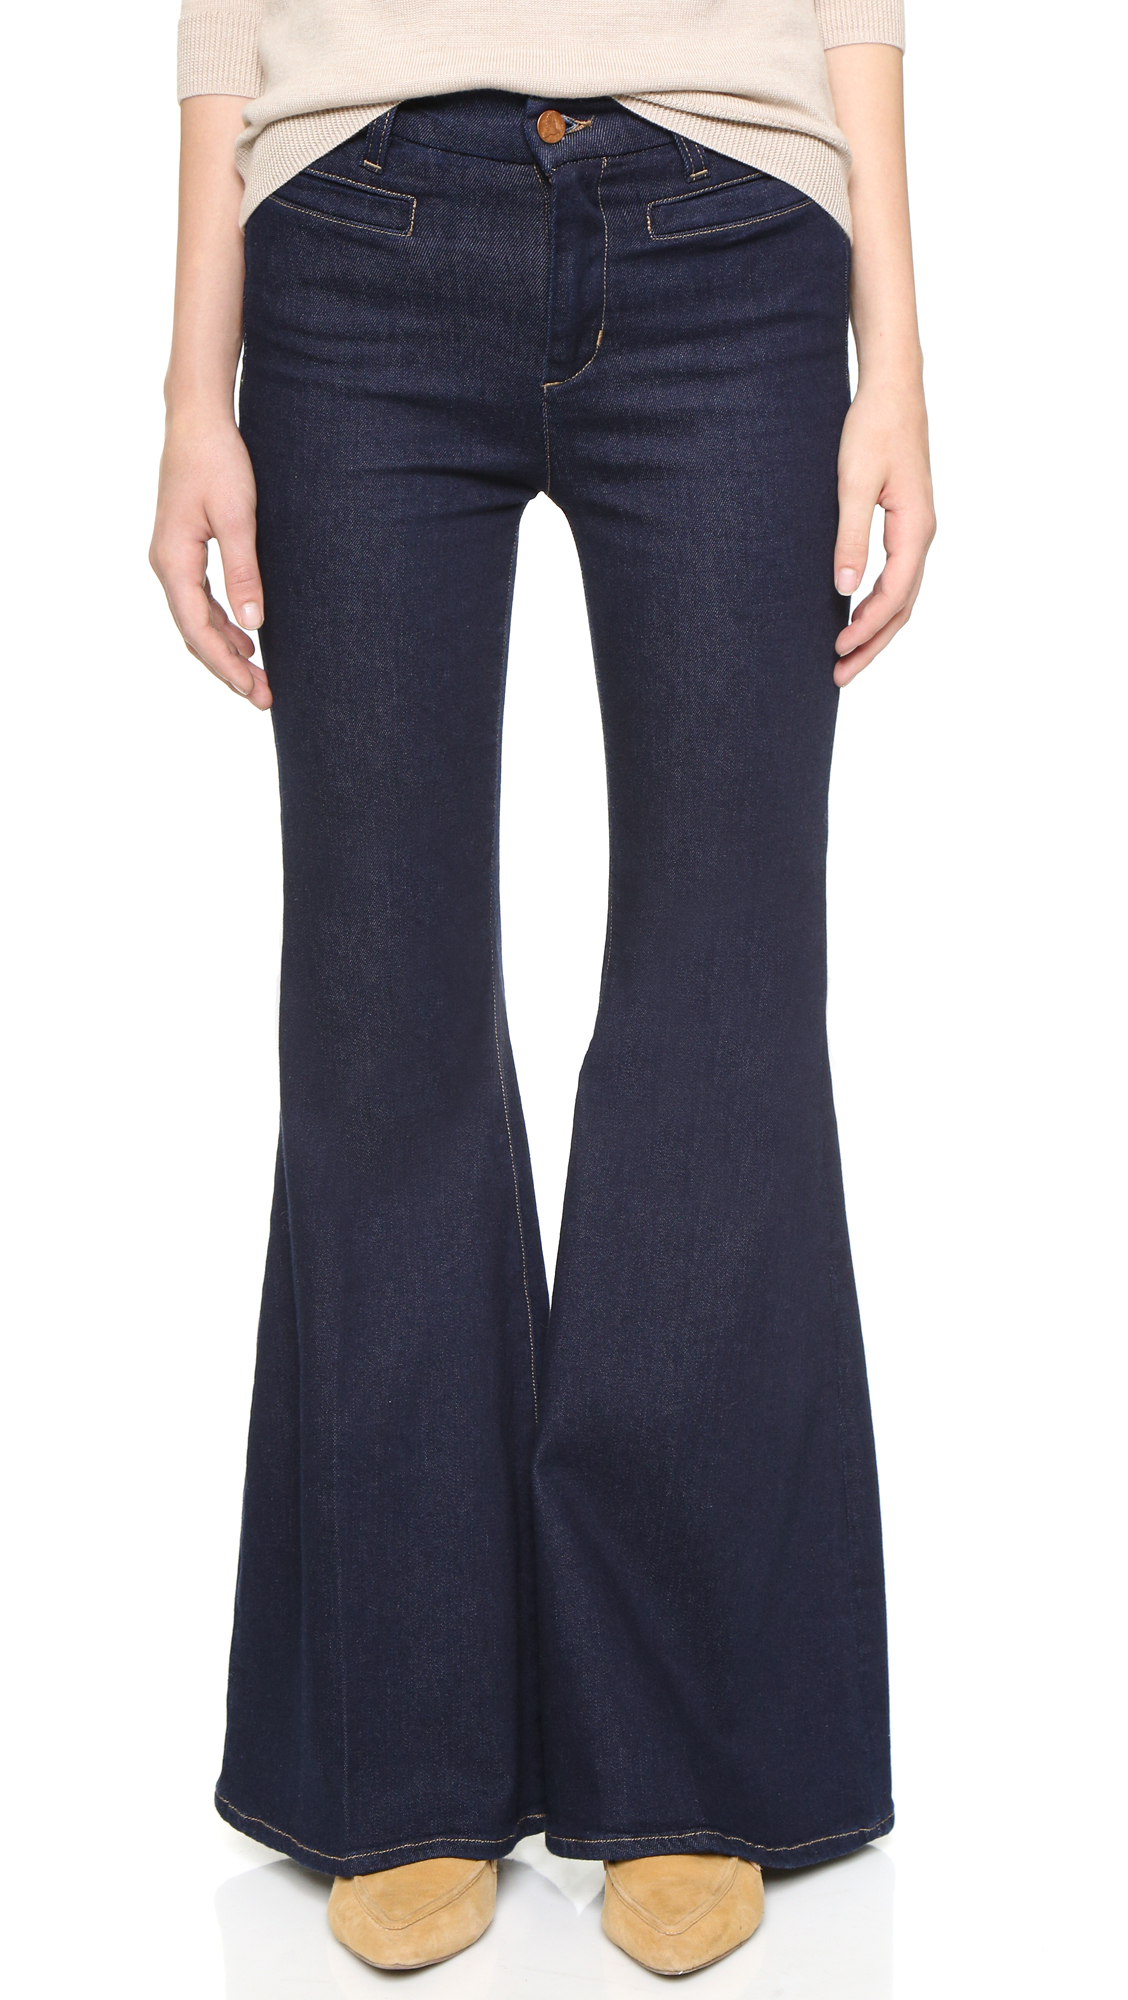 M.i.h jeans The Principle Petite Super Flare Jeans in Blue | Lyst